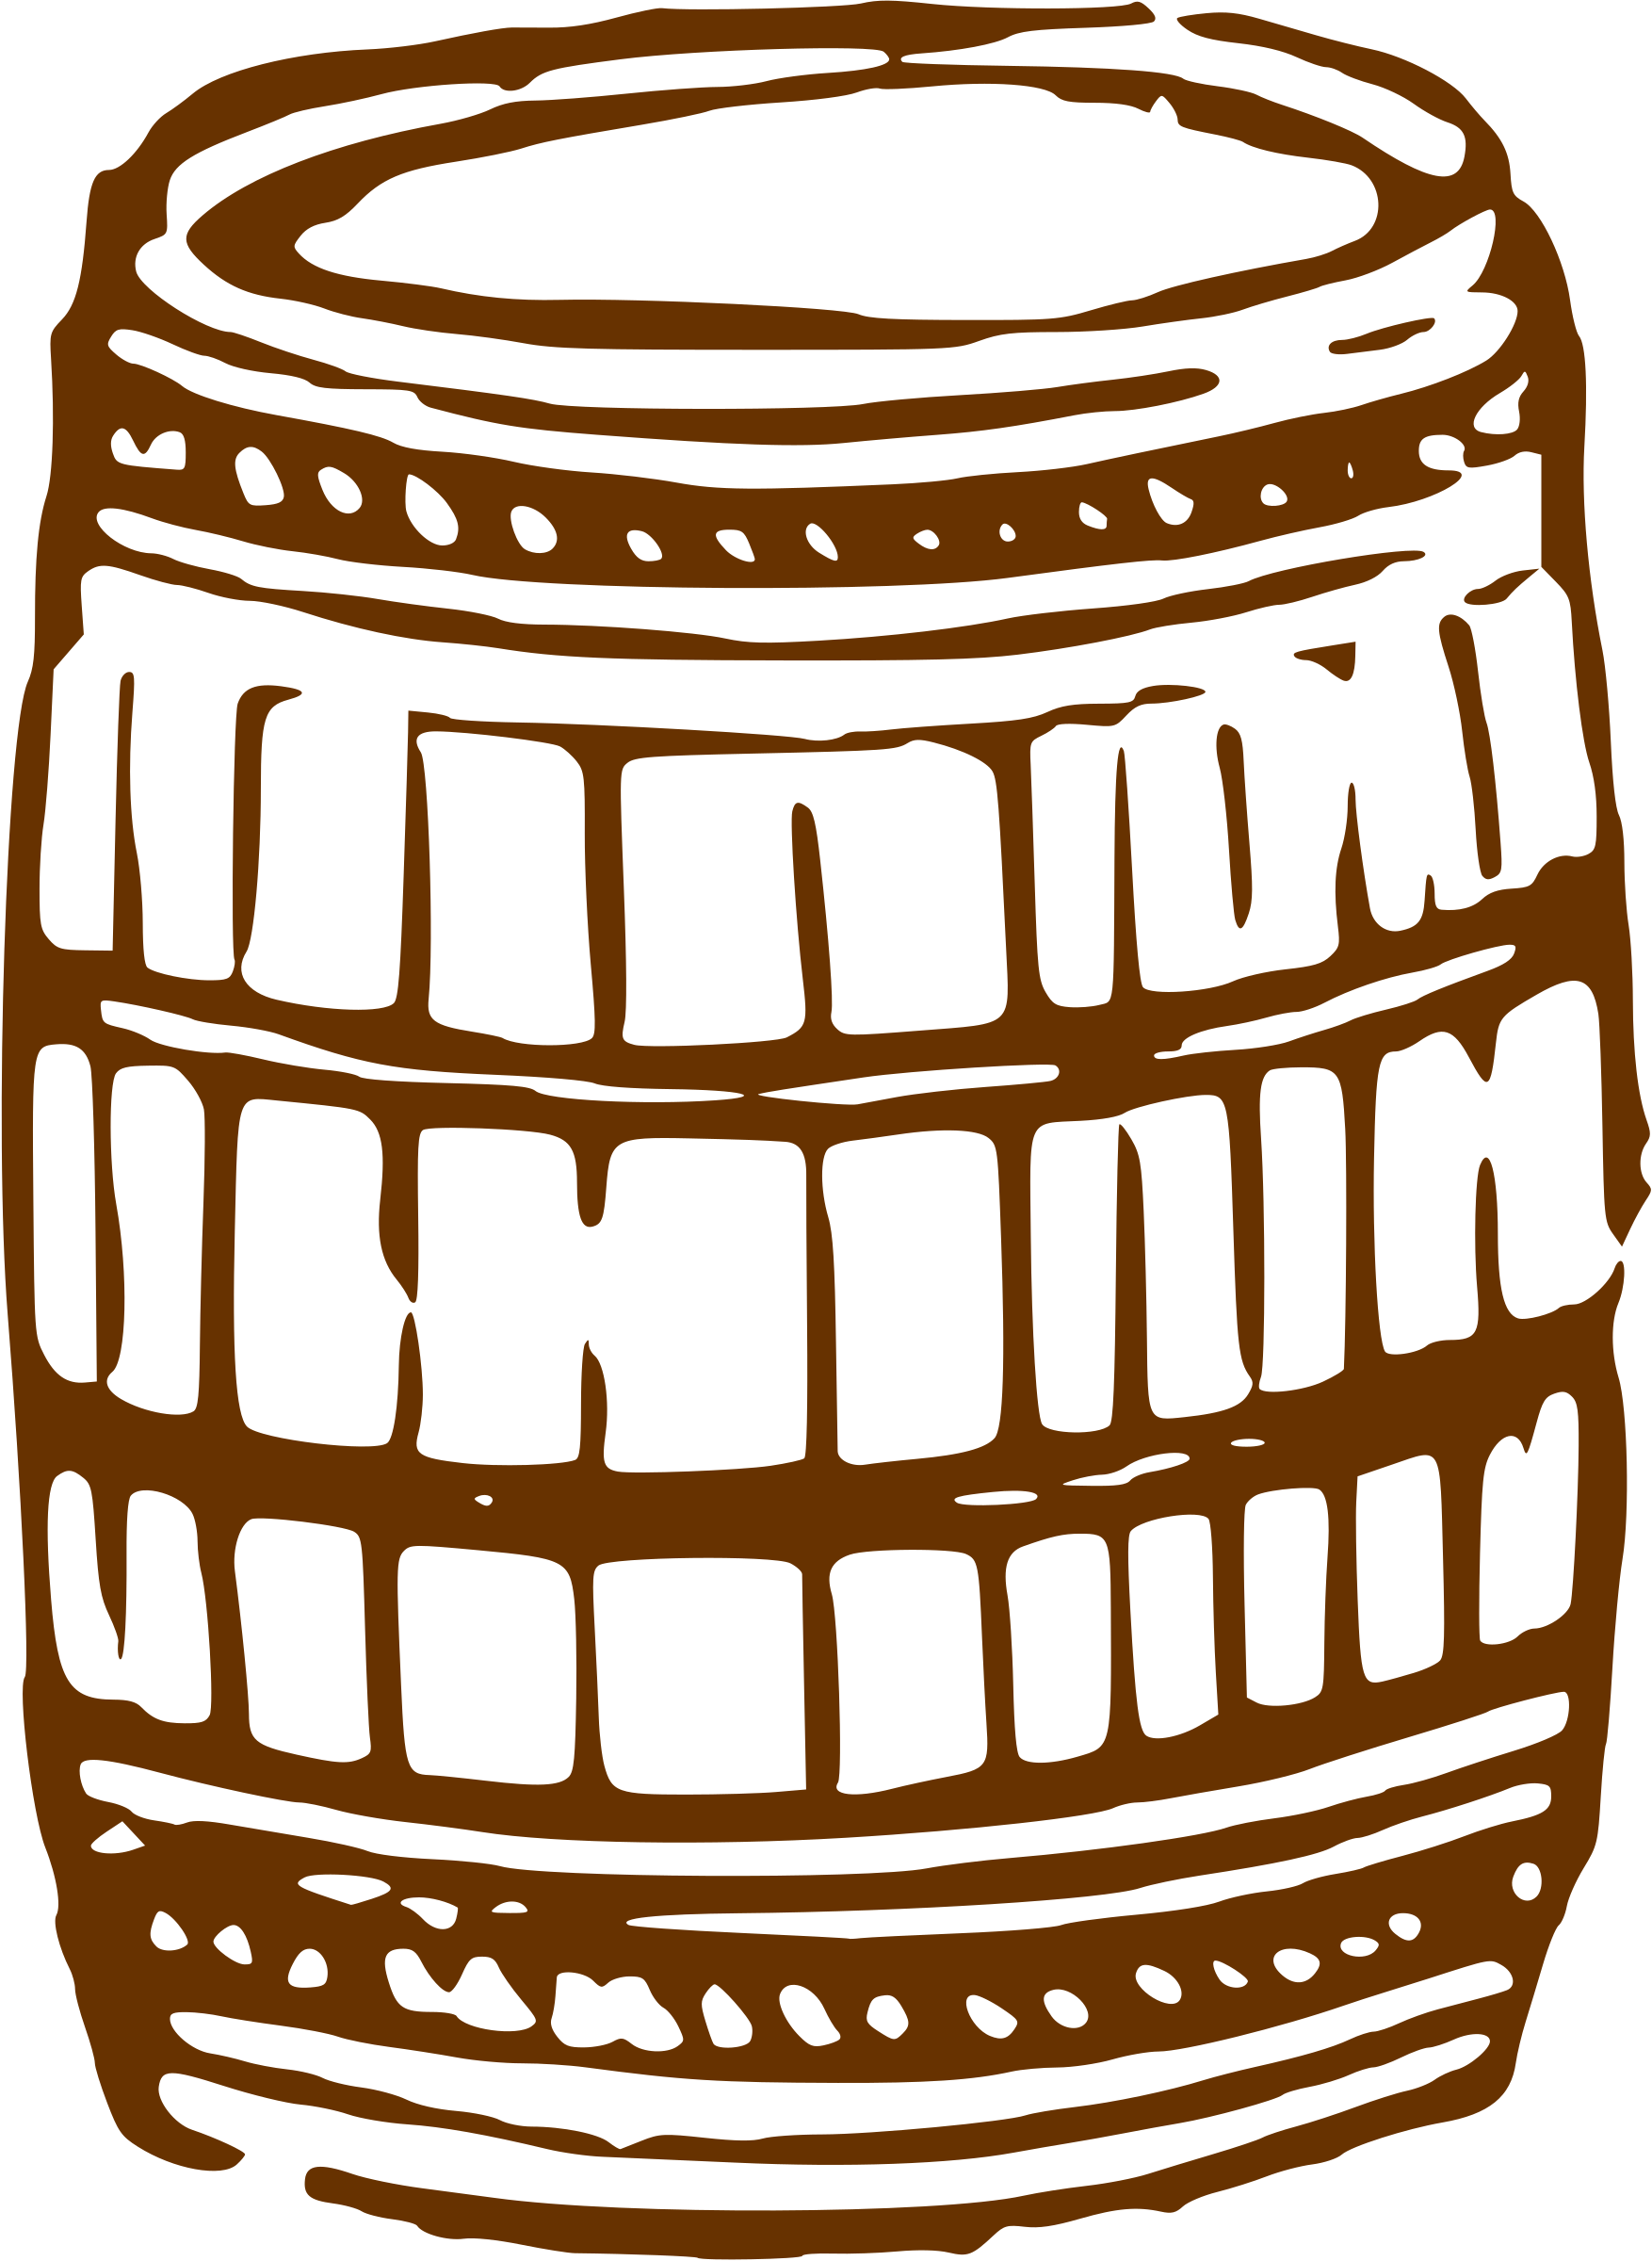 https://openclipart.org/image/2400px/svg_to_png/221672/Firkin.png